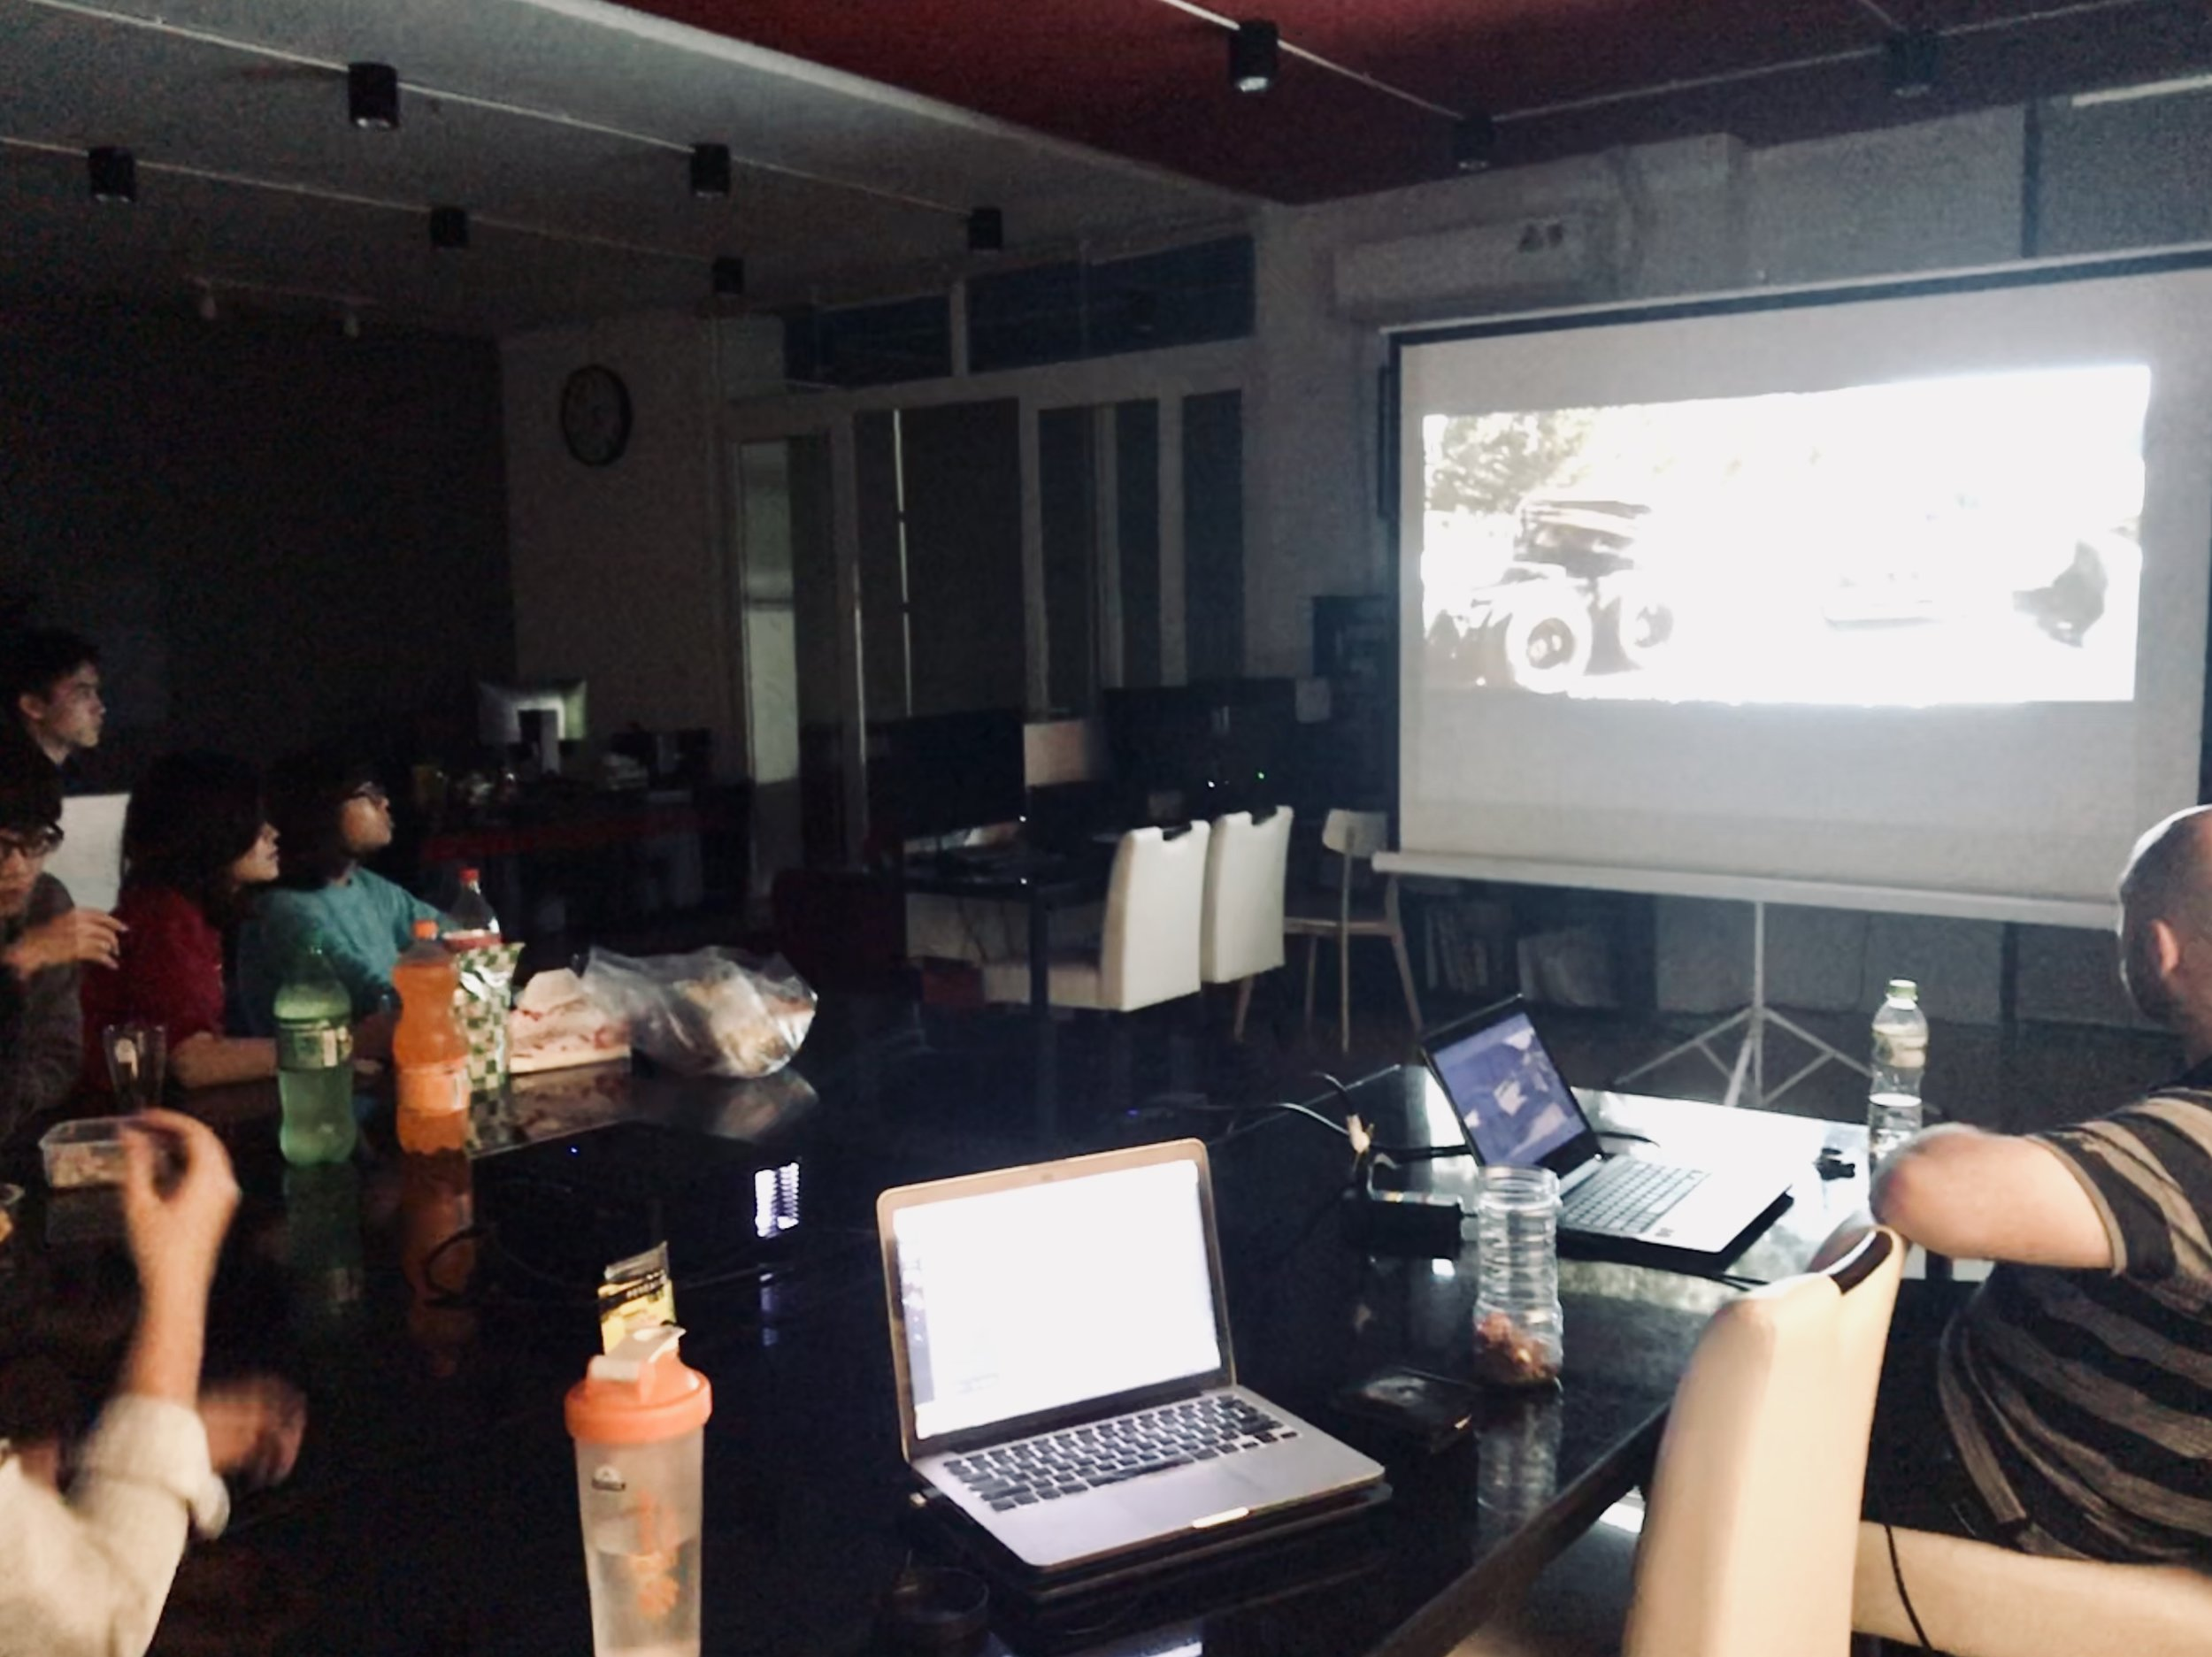 Watching  Zombieland  (2009) with students and fellows for Bedrock movie night